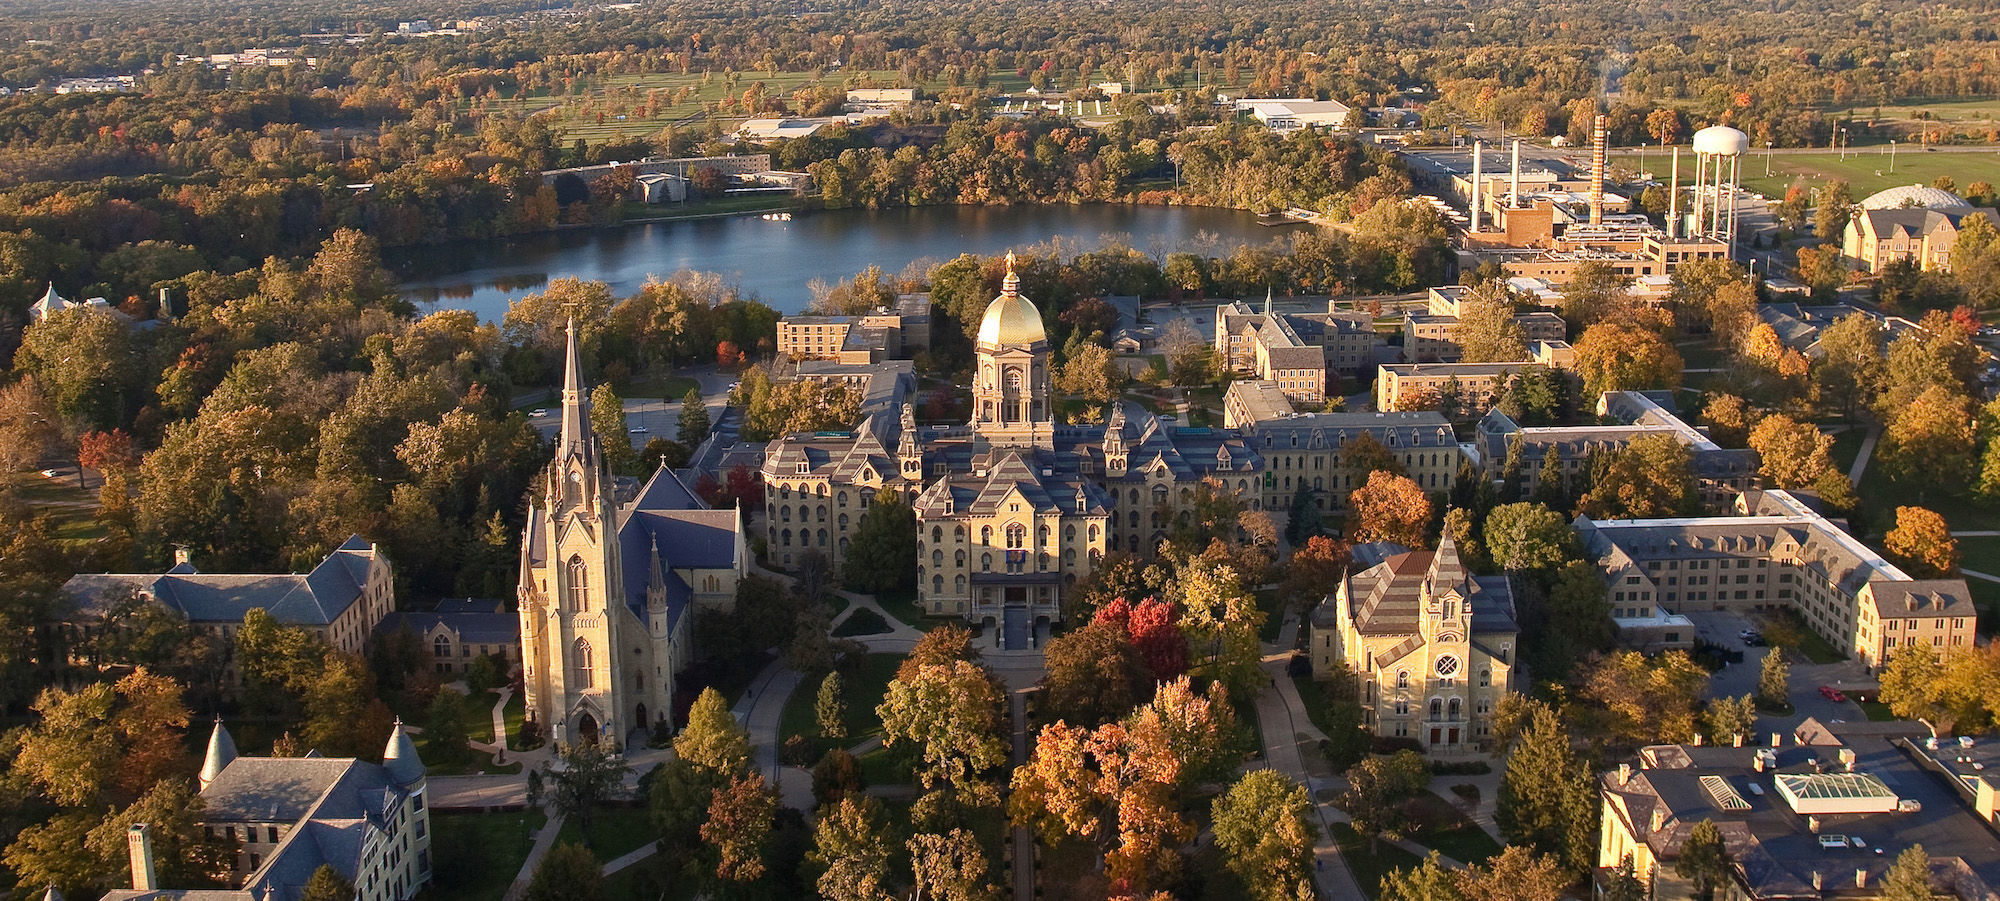 Image result for notre dame university images